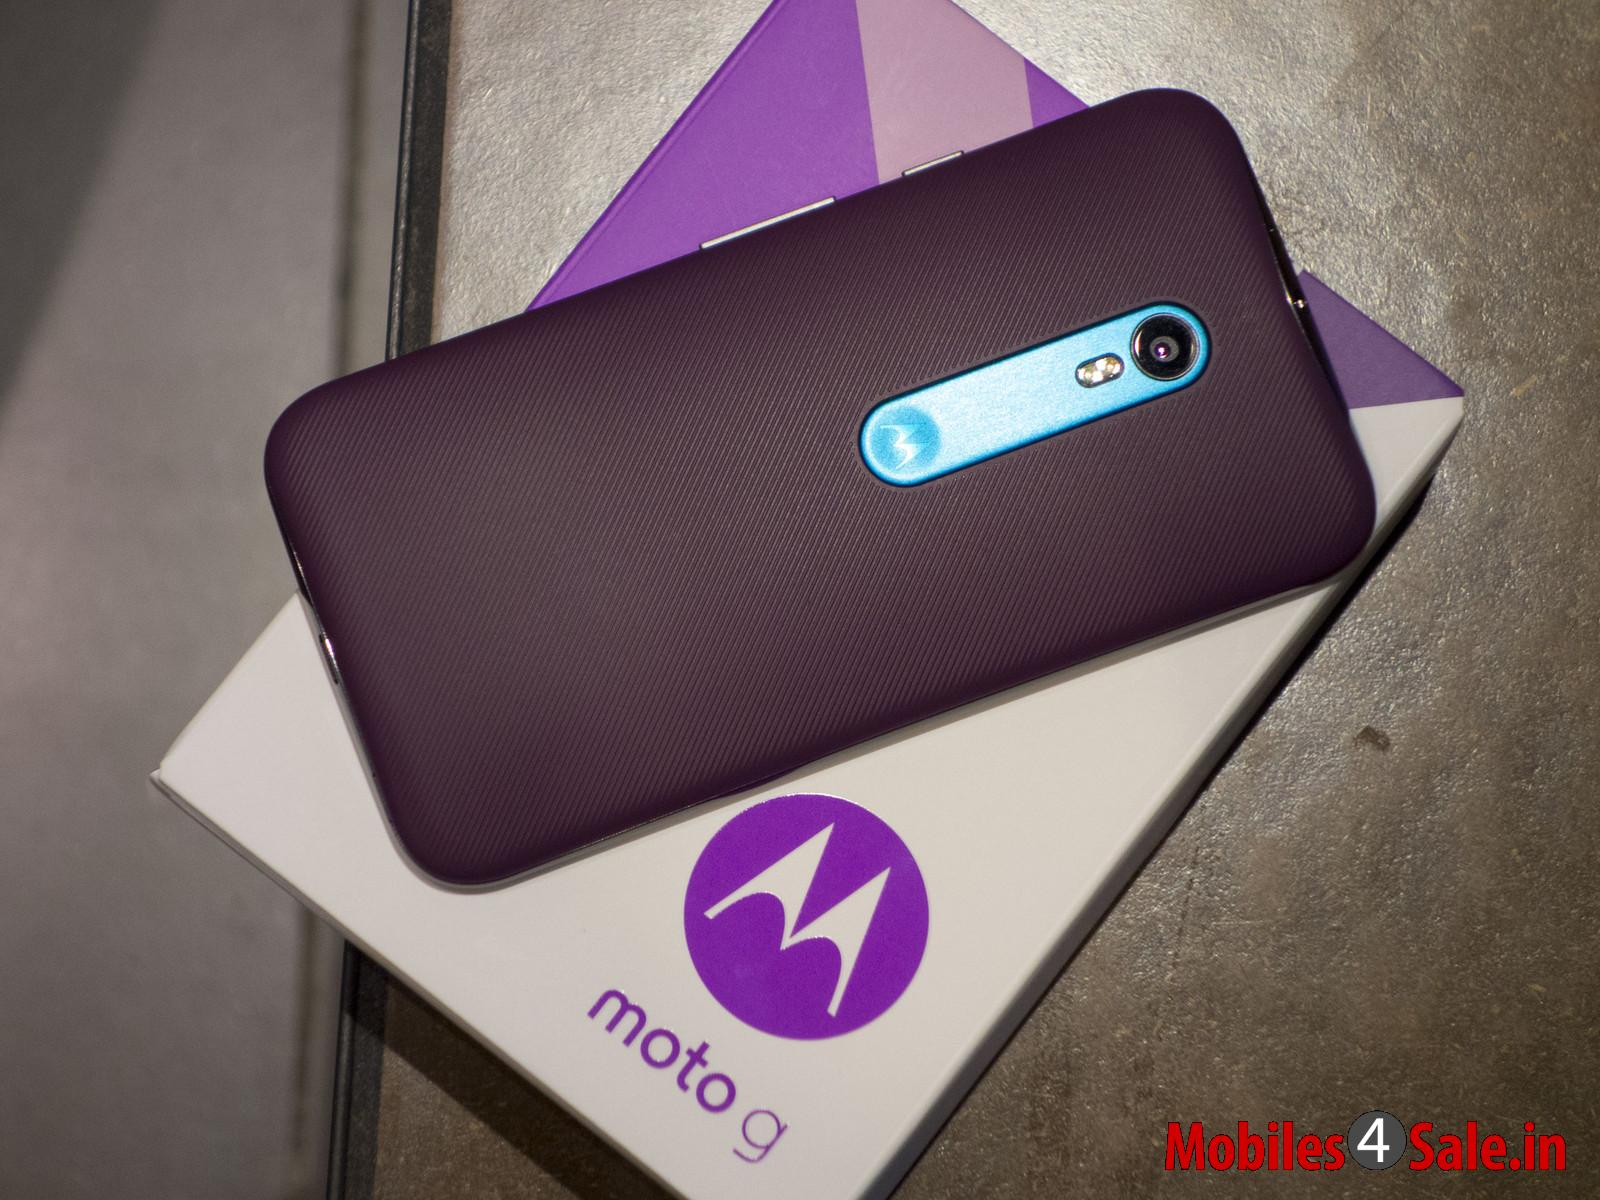 Moto G 2015 Features 13 Mp Camera